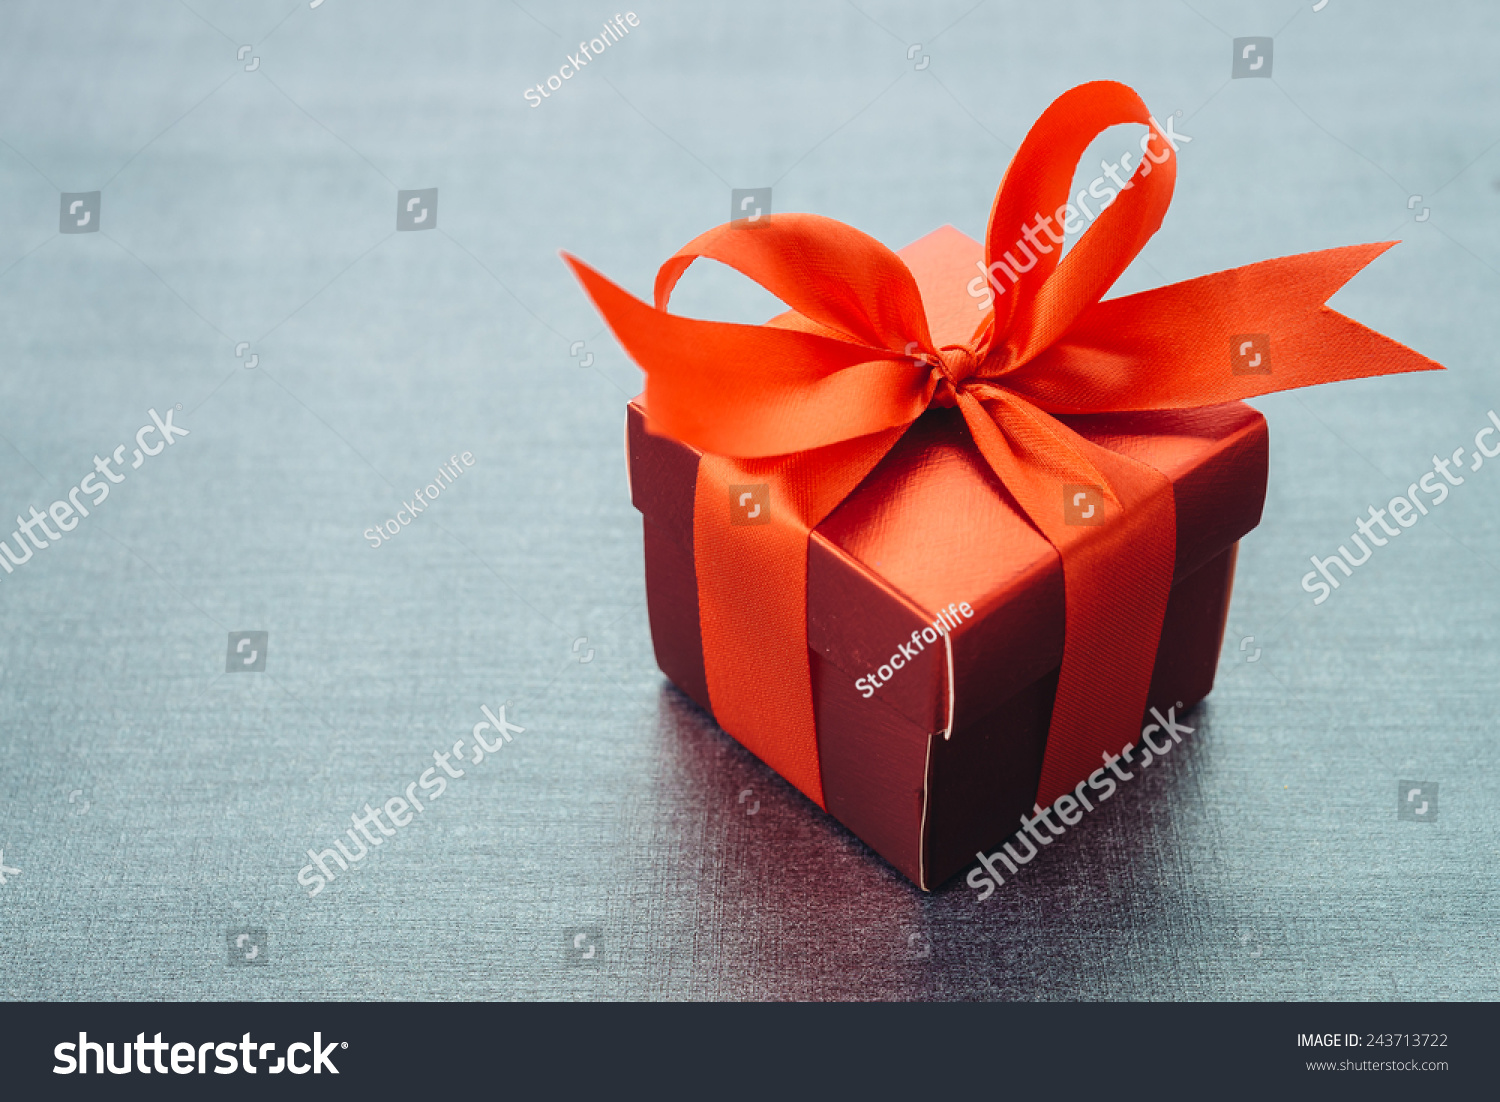 Gift box Vintage effect style pictures